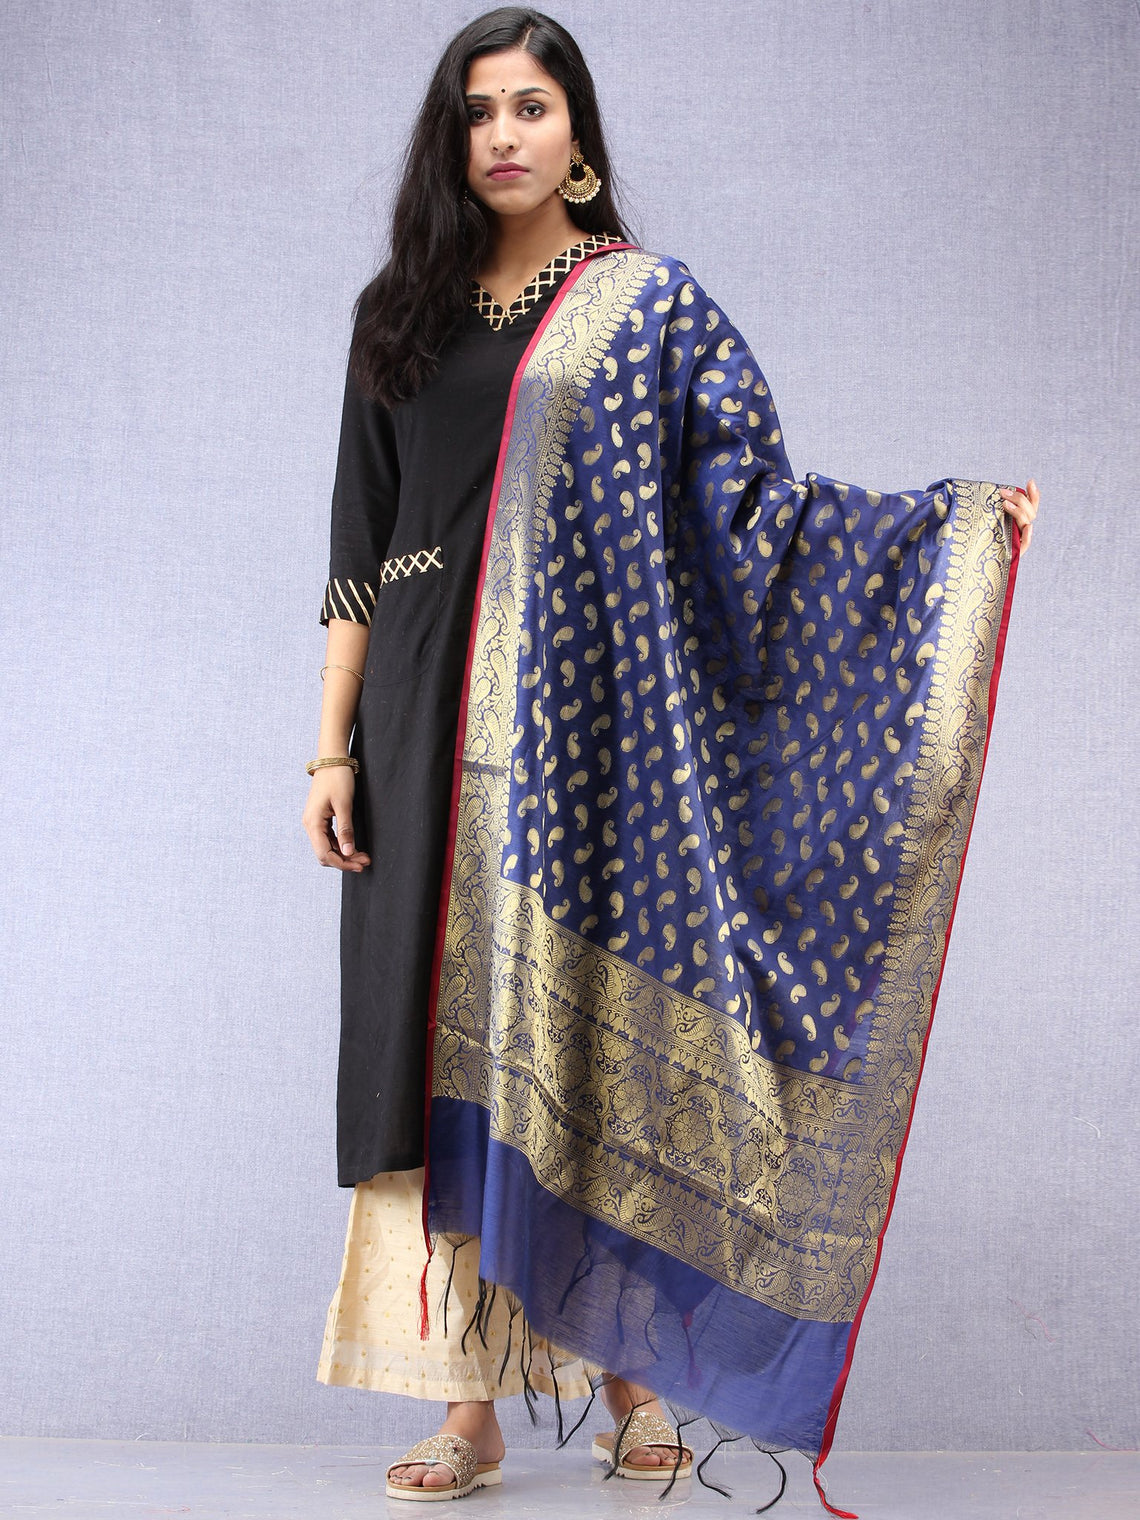 Banarasi Chanderi Dupatta With Resham Work - Navy Blue & Gold - D04170857